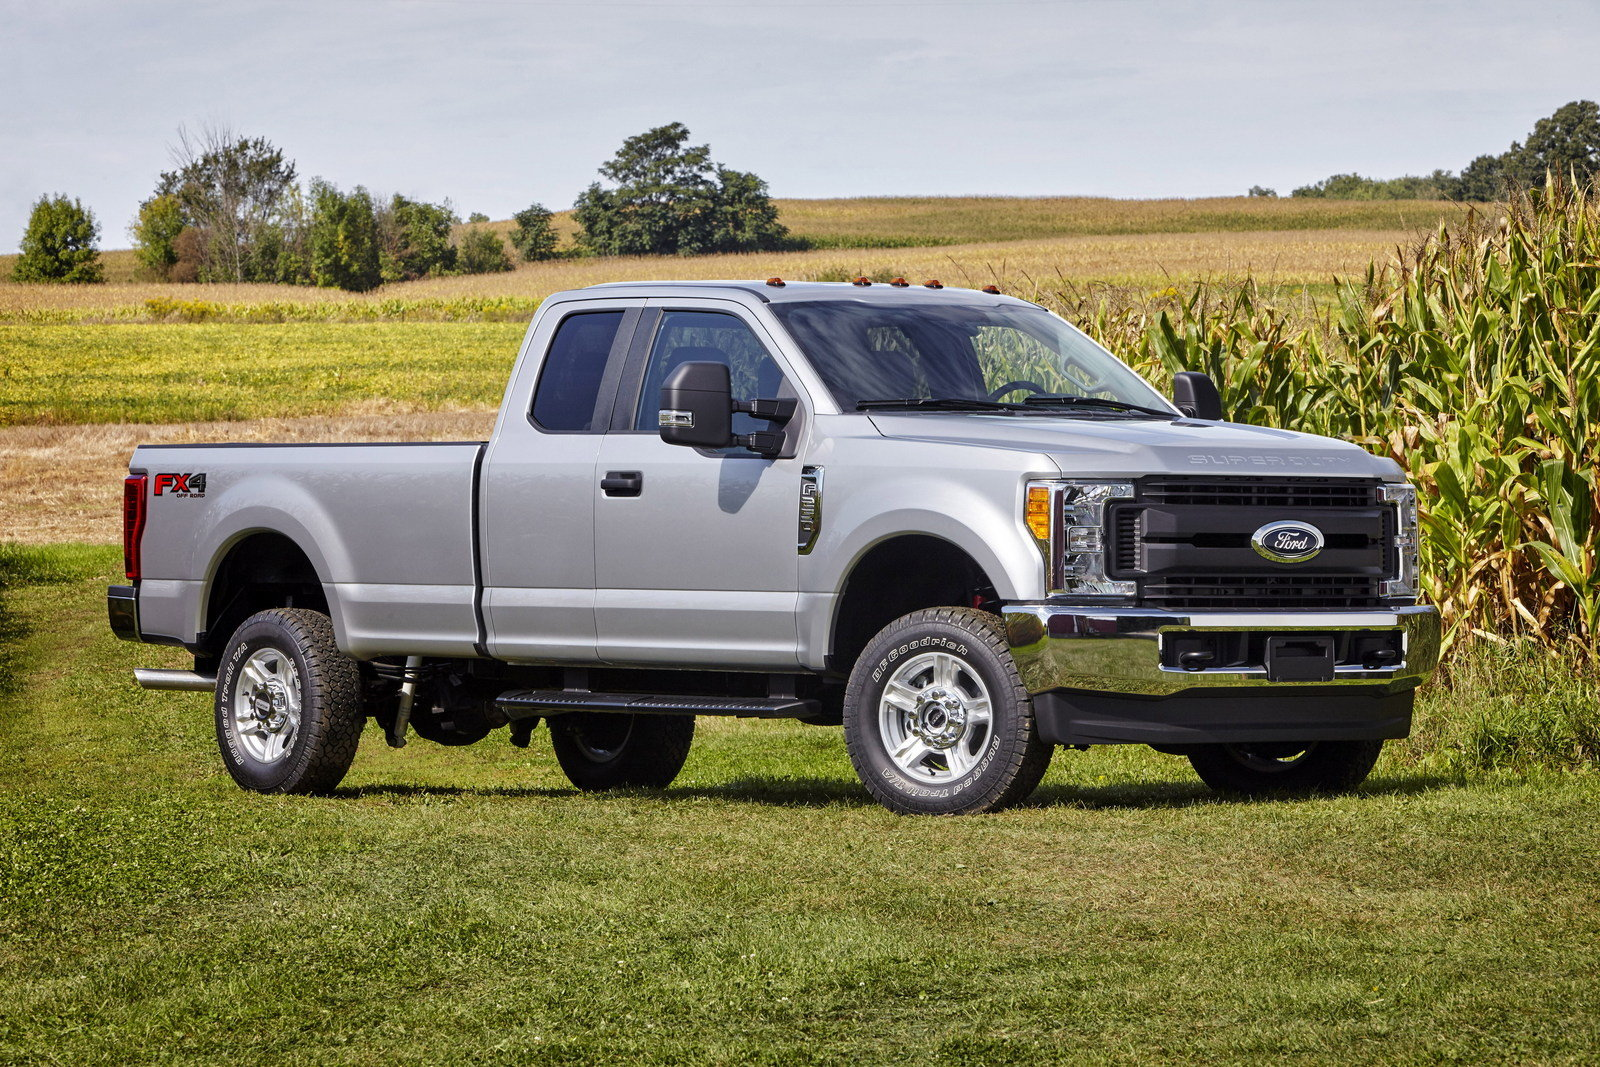 2017 ford super duty picture 648397 truck review top. Black Bedroom Furniture Sets. Home Design Ideas